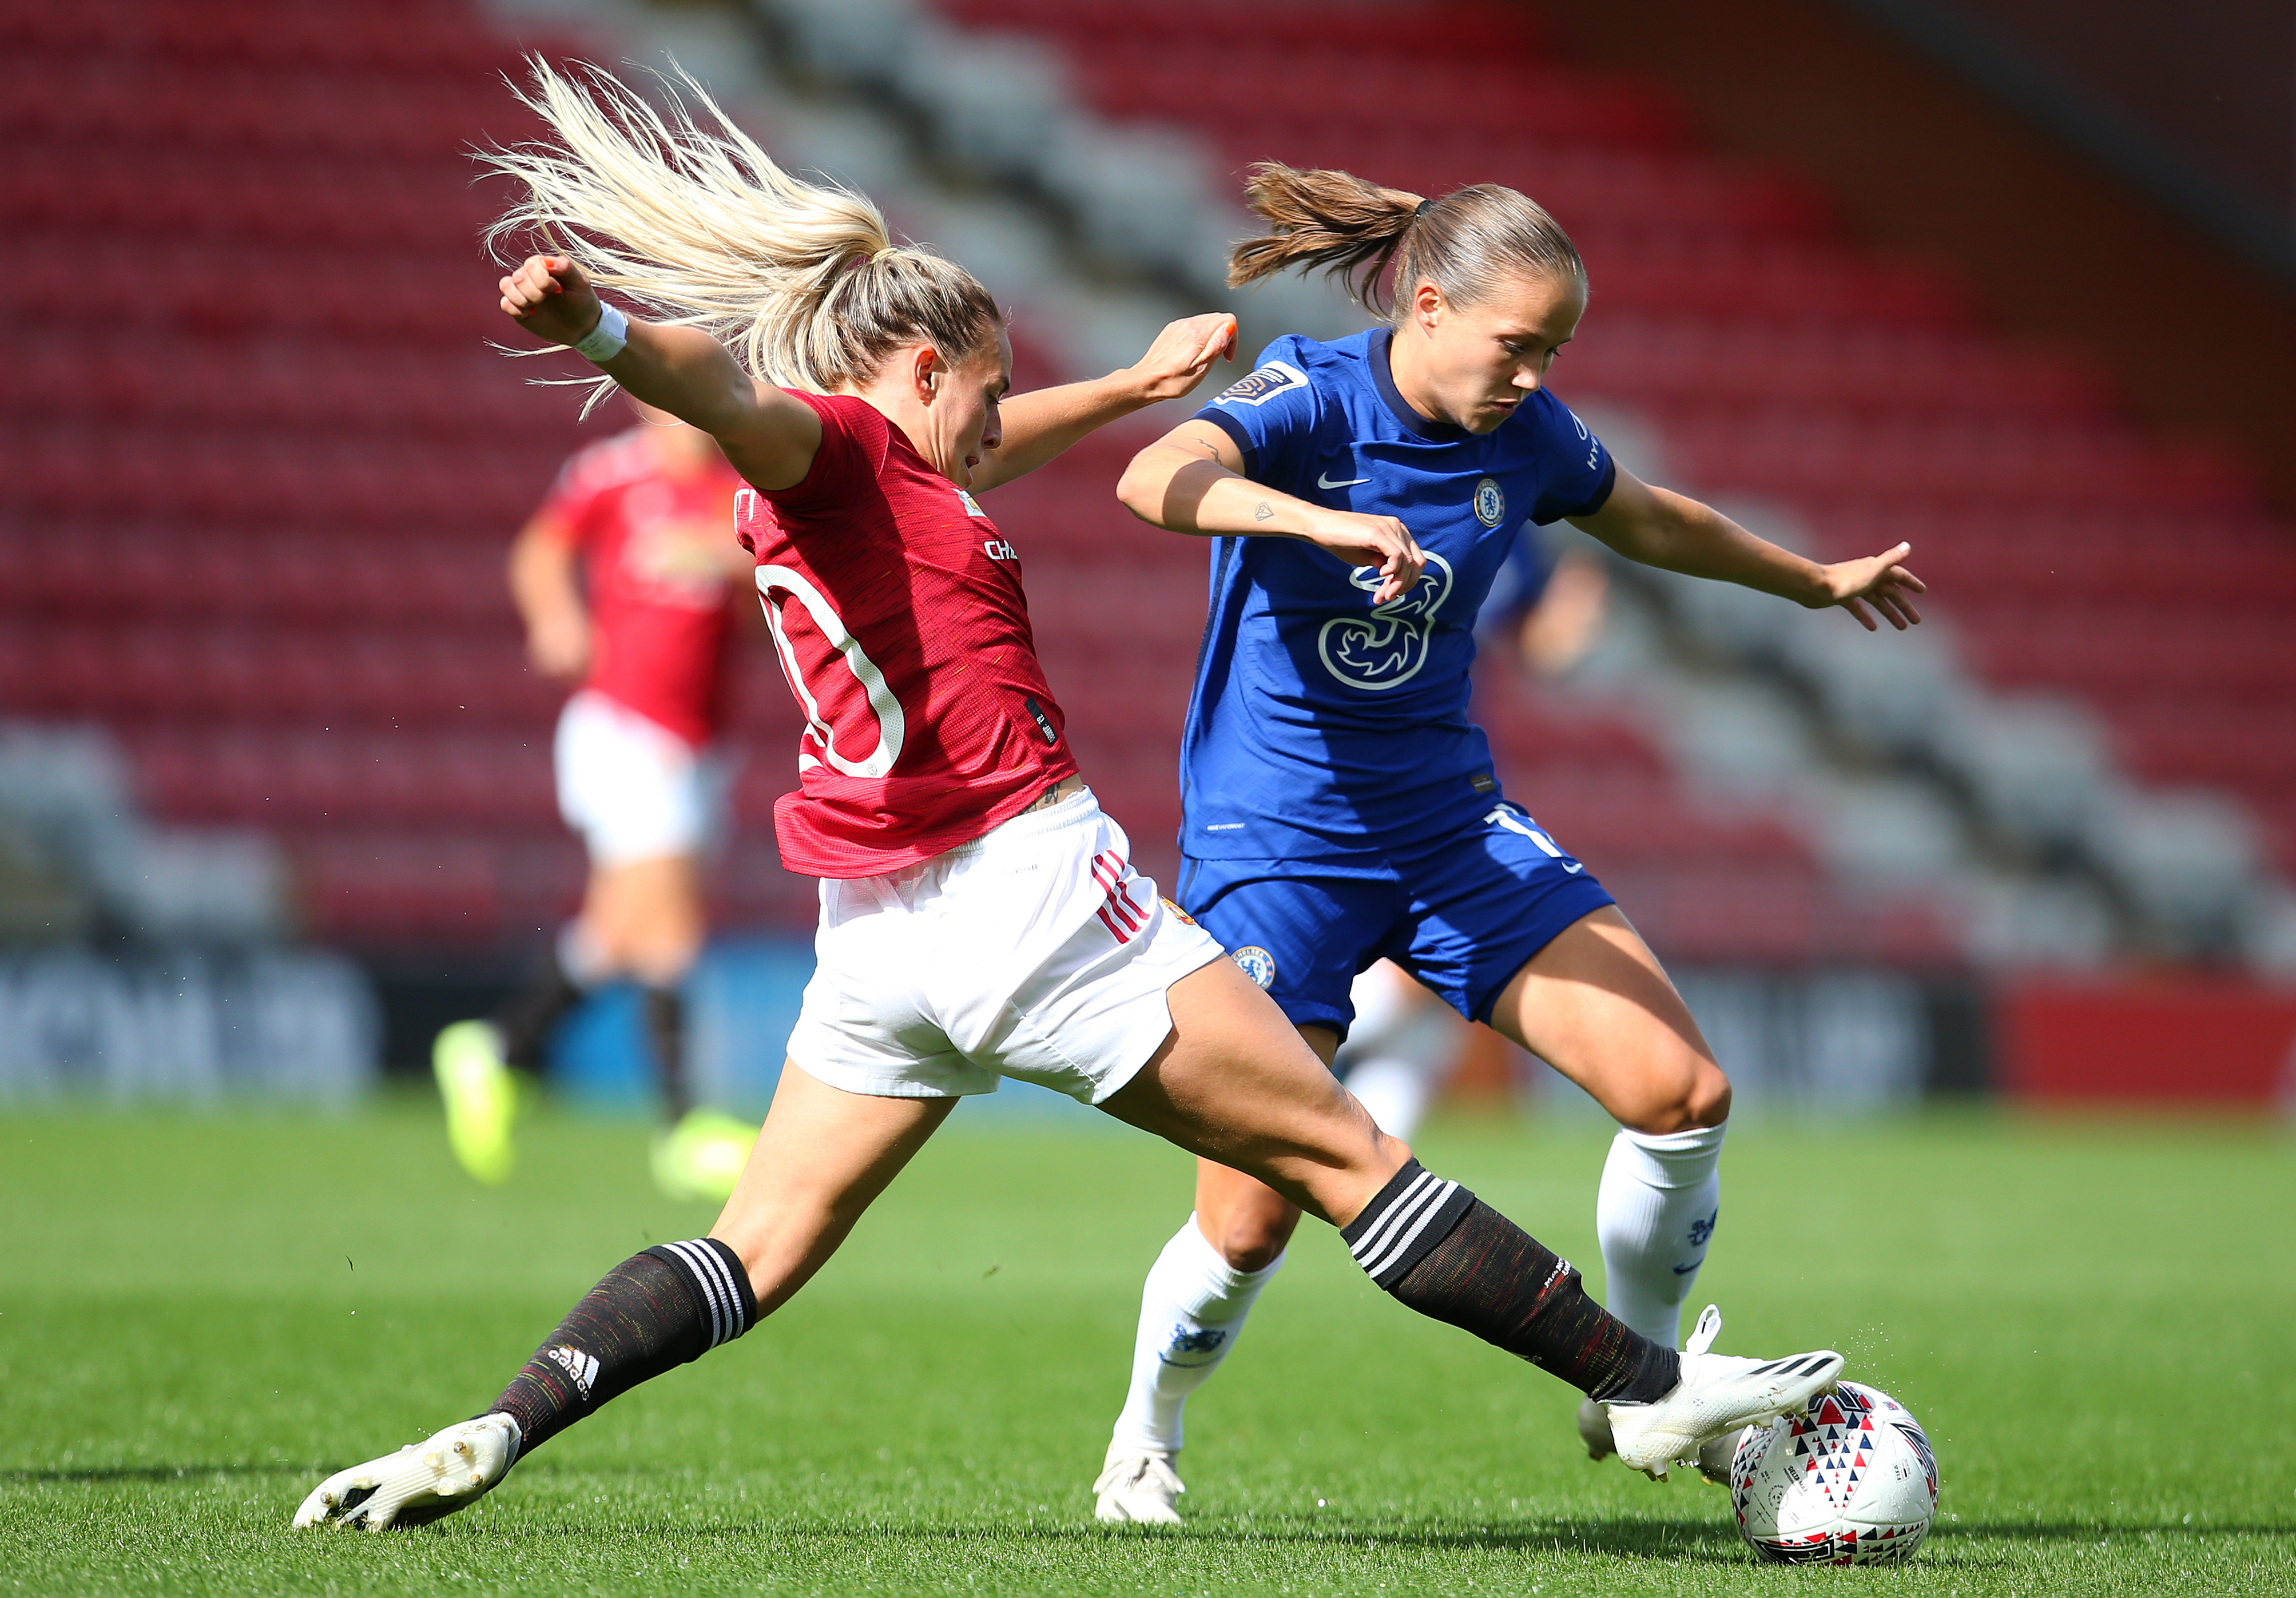 LEIGH, ENGLAND - SEPTEMBER 06:  Kirsty Smith of Manchester United Women tackles Guro Reiten of Chelsea Women during the Barclays FA Women's Super League at Leigh Sports Village on September 06, 2020 in Leigh, England. (Photo by James Gill - Danehouse/Getty Images)